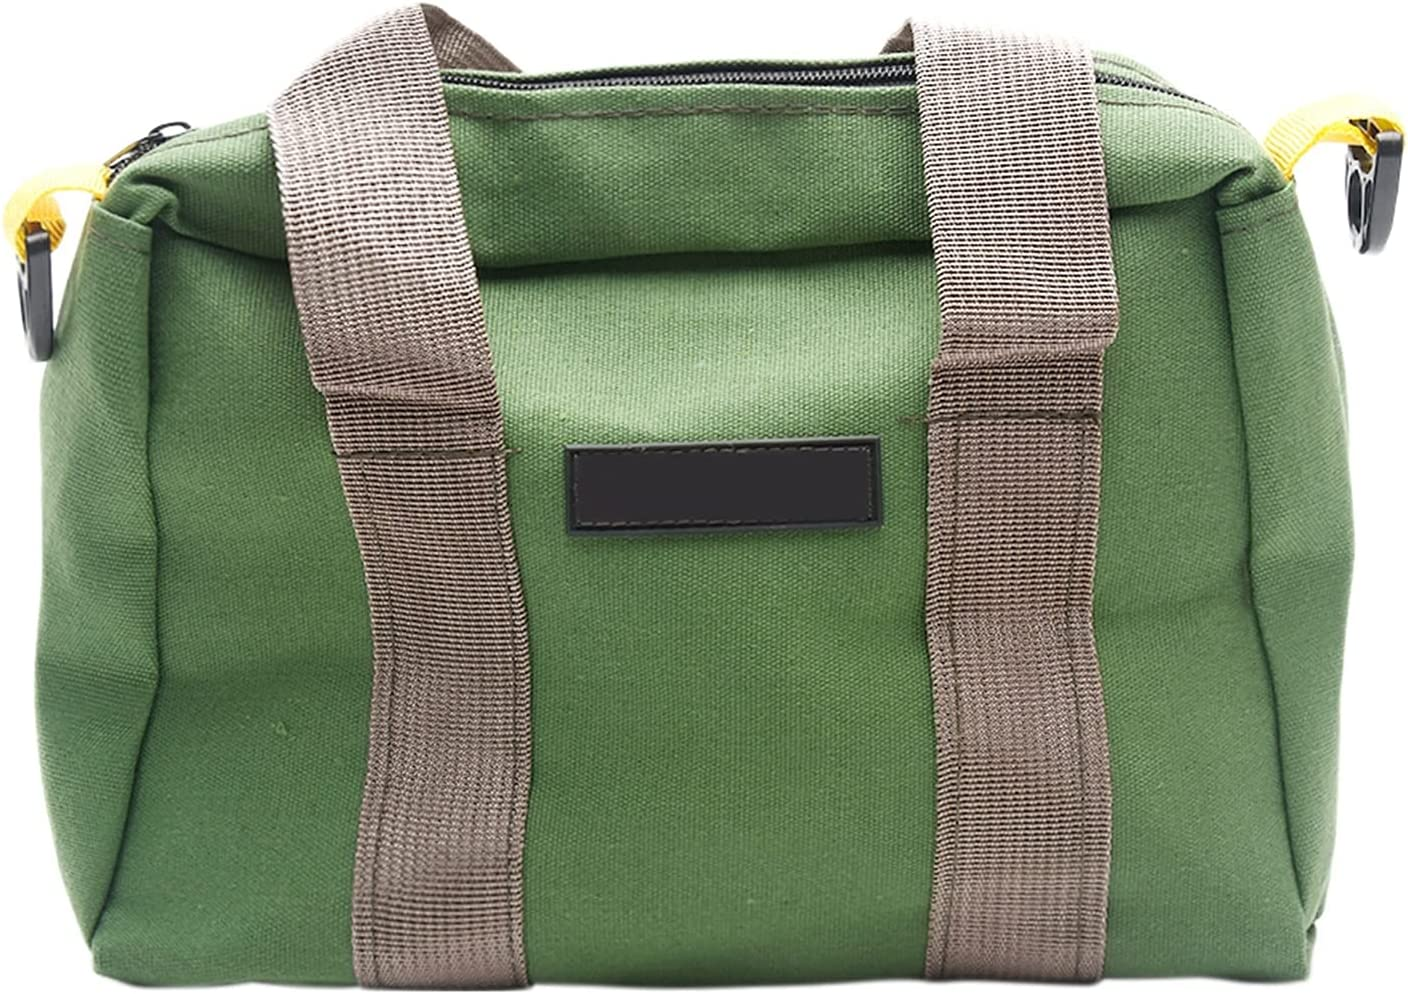 tool kit with tools Multi-Function Canvas Tool Bag,Heavy Duty Ox